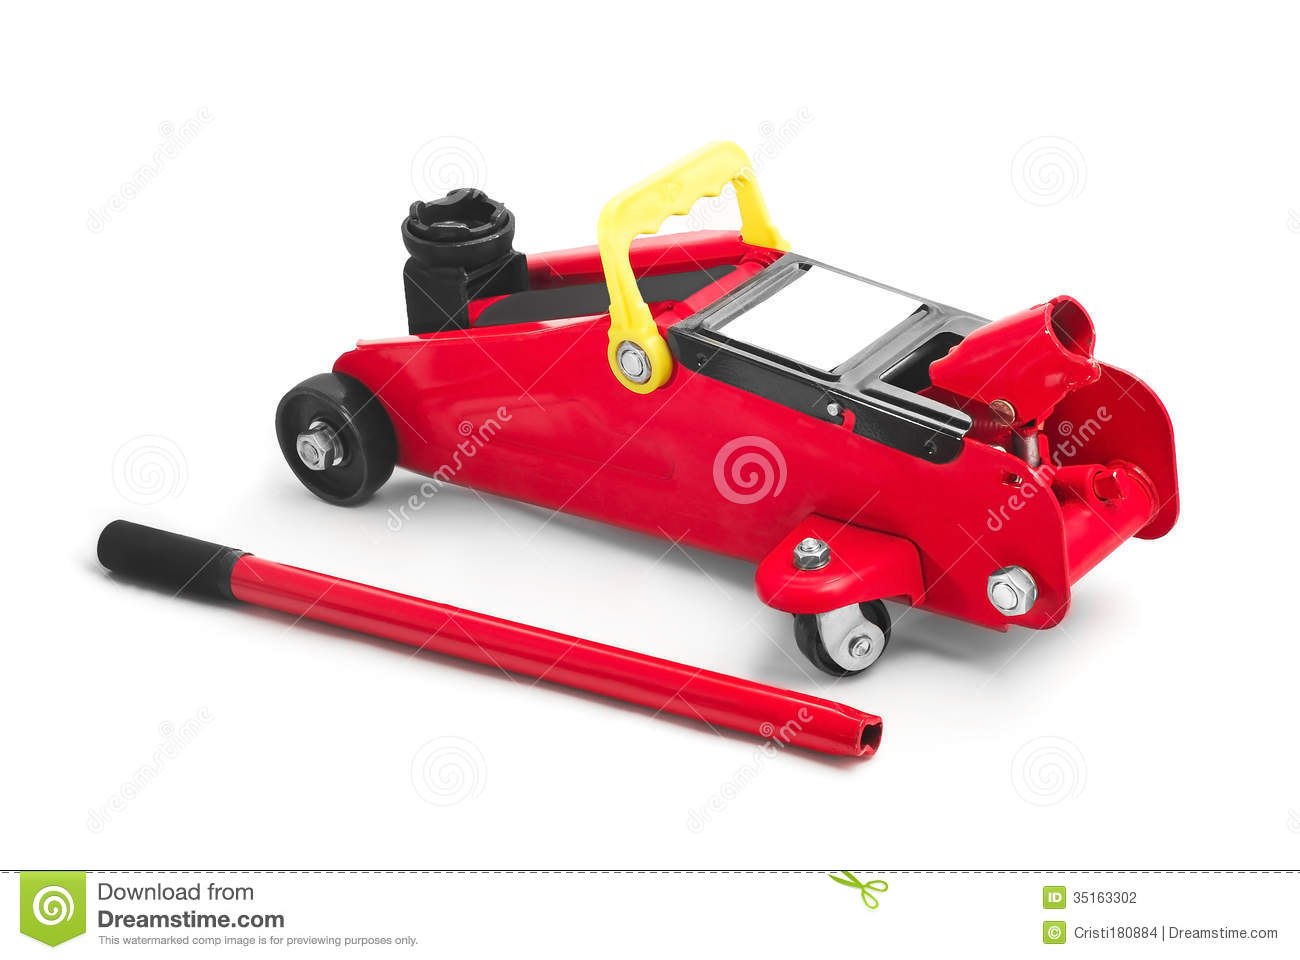 Hydraulic car jack stock photo. Image of background ...